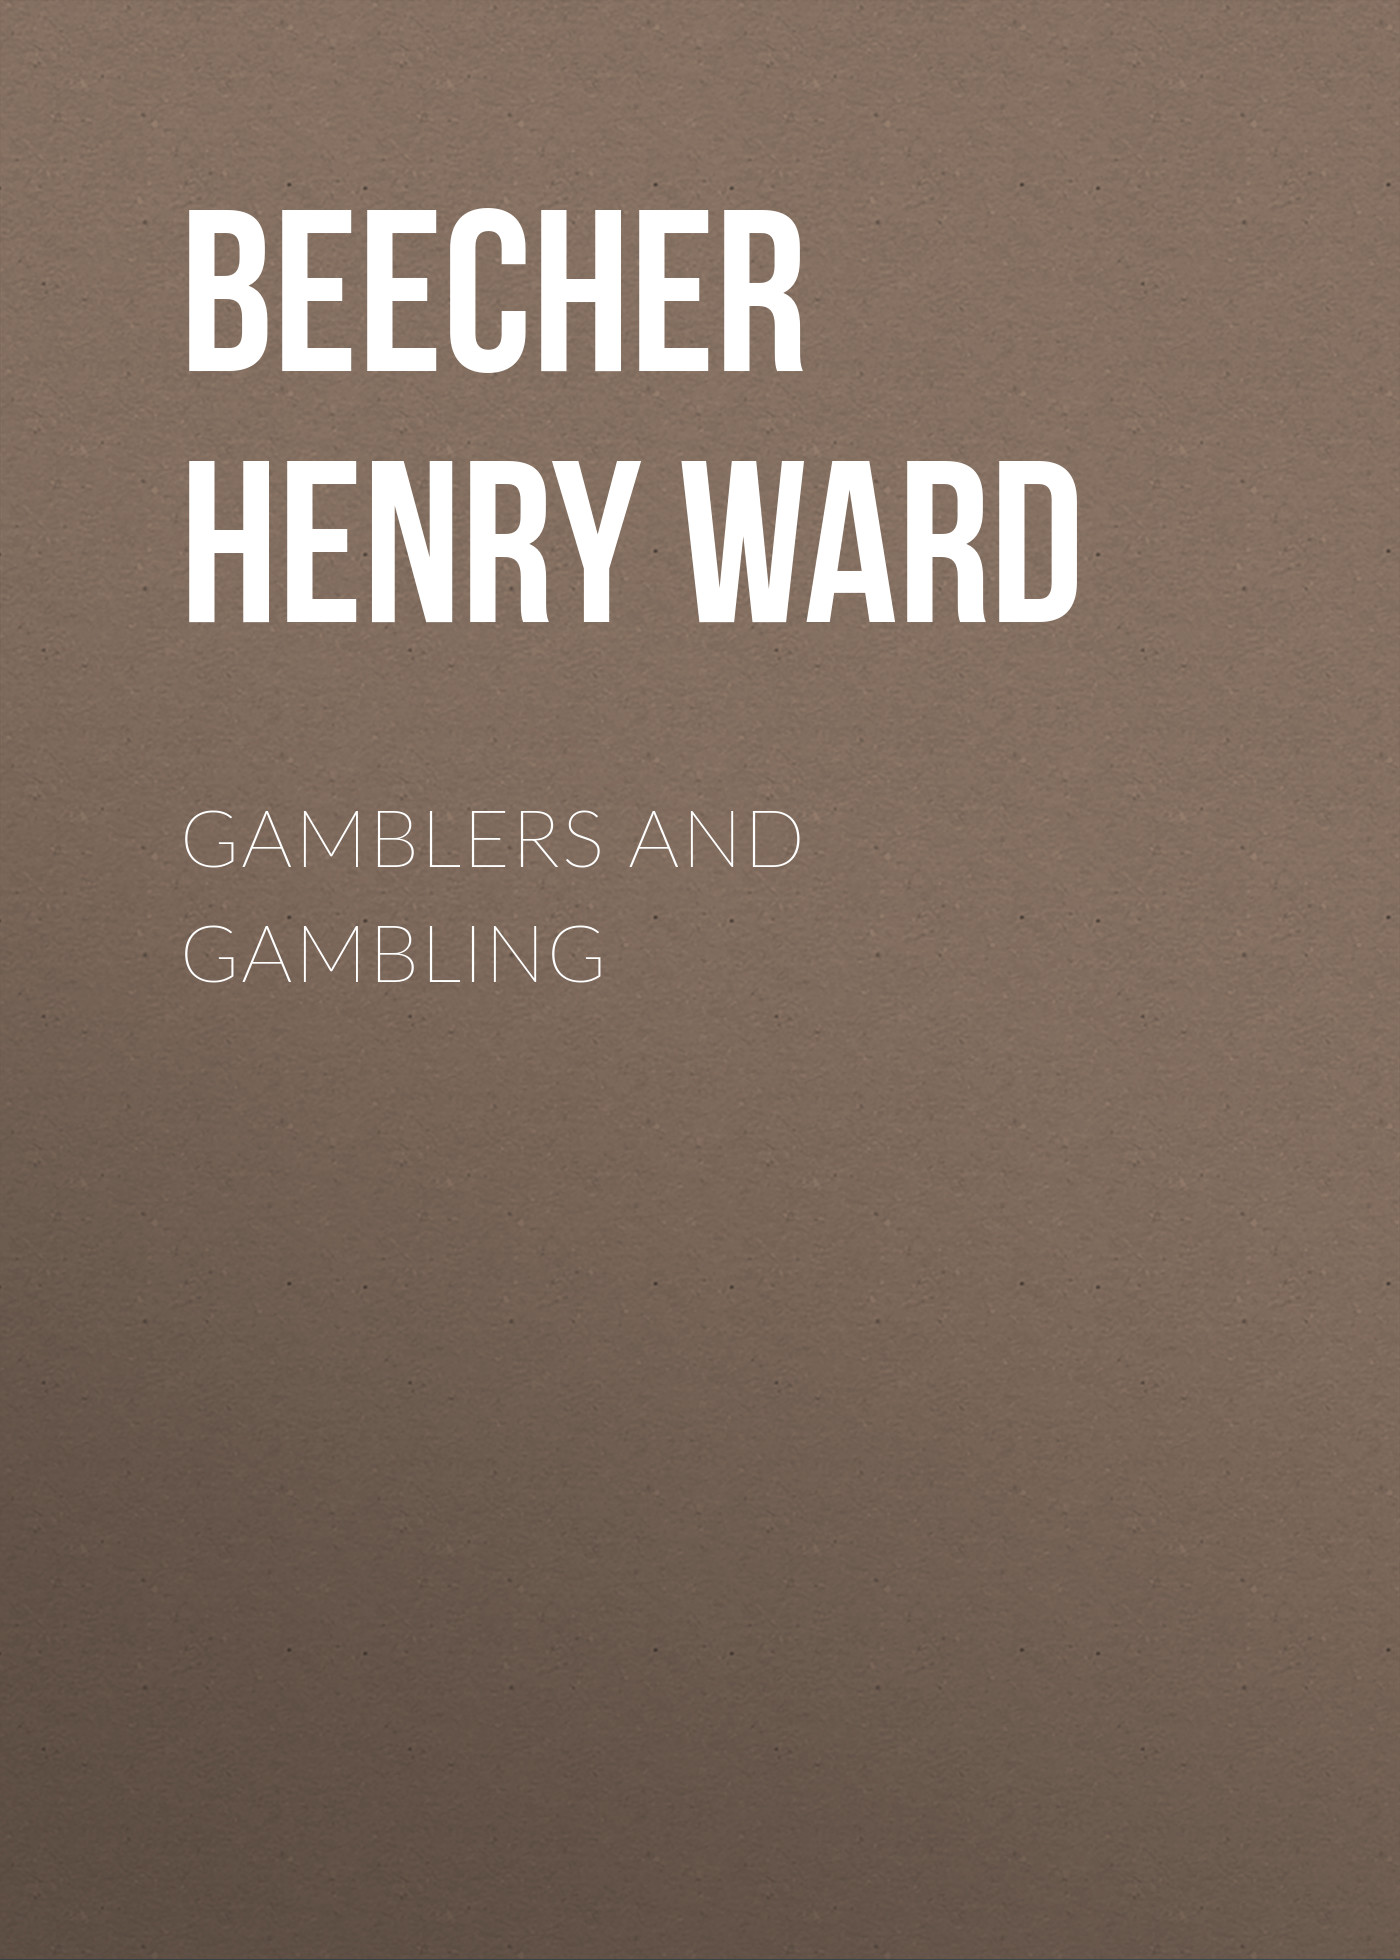 Beecher Henry Ward Gamblers and Gambling watch and ward